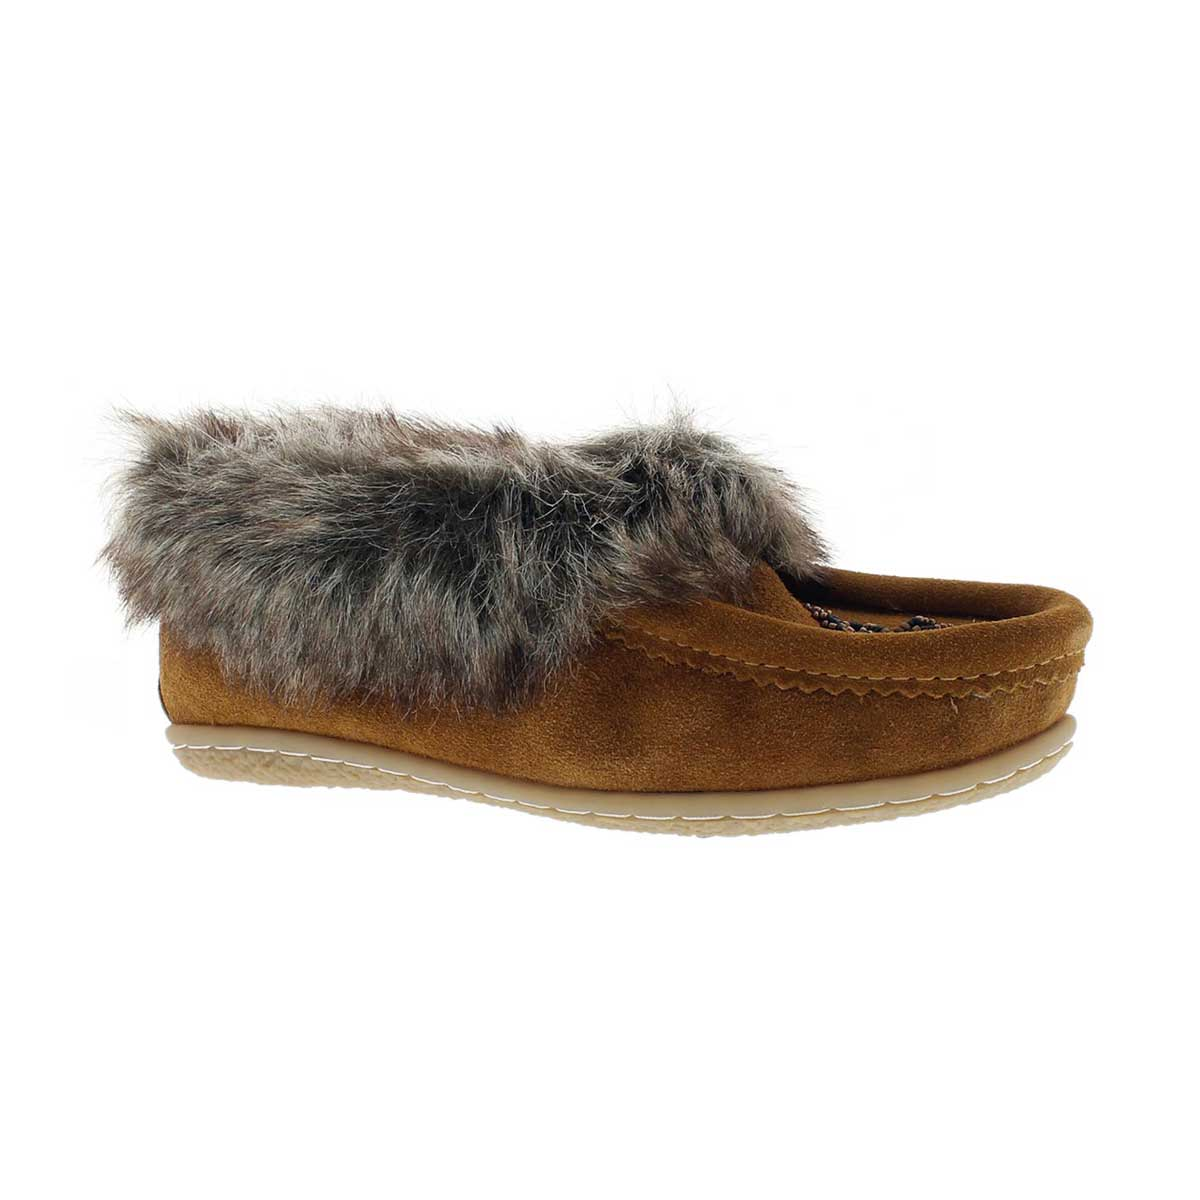 Girls' CUTE 2 JR hazel faux rabbit moccasins